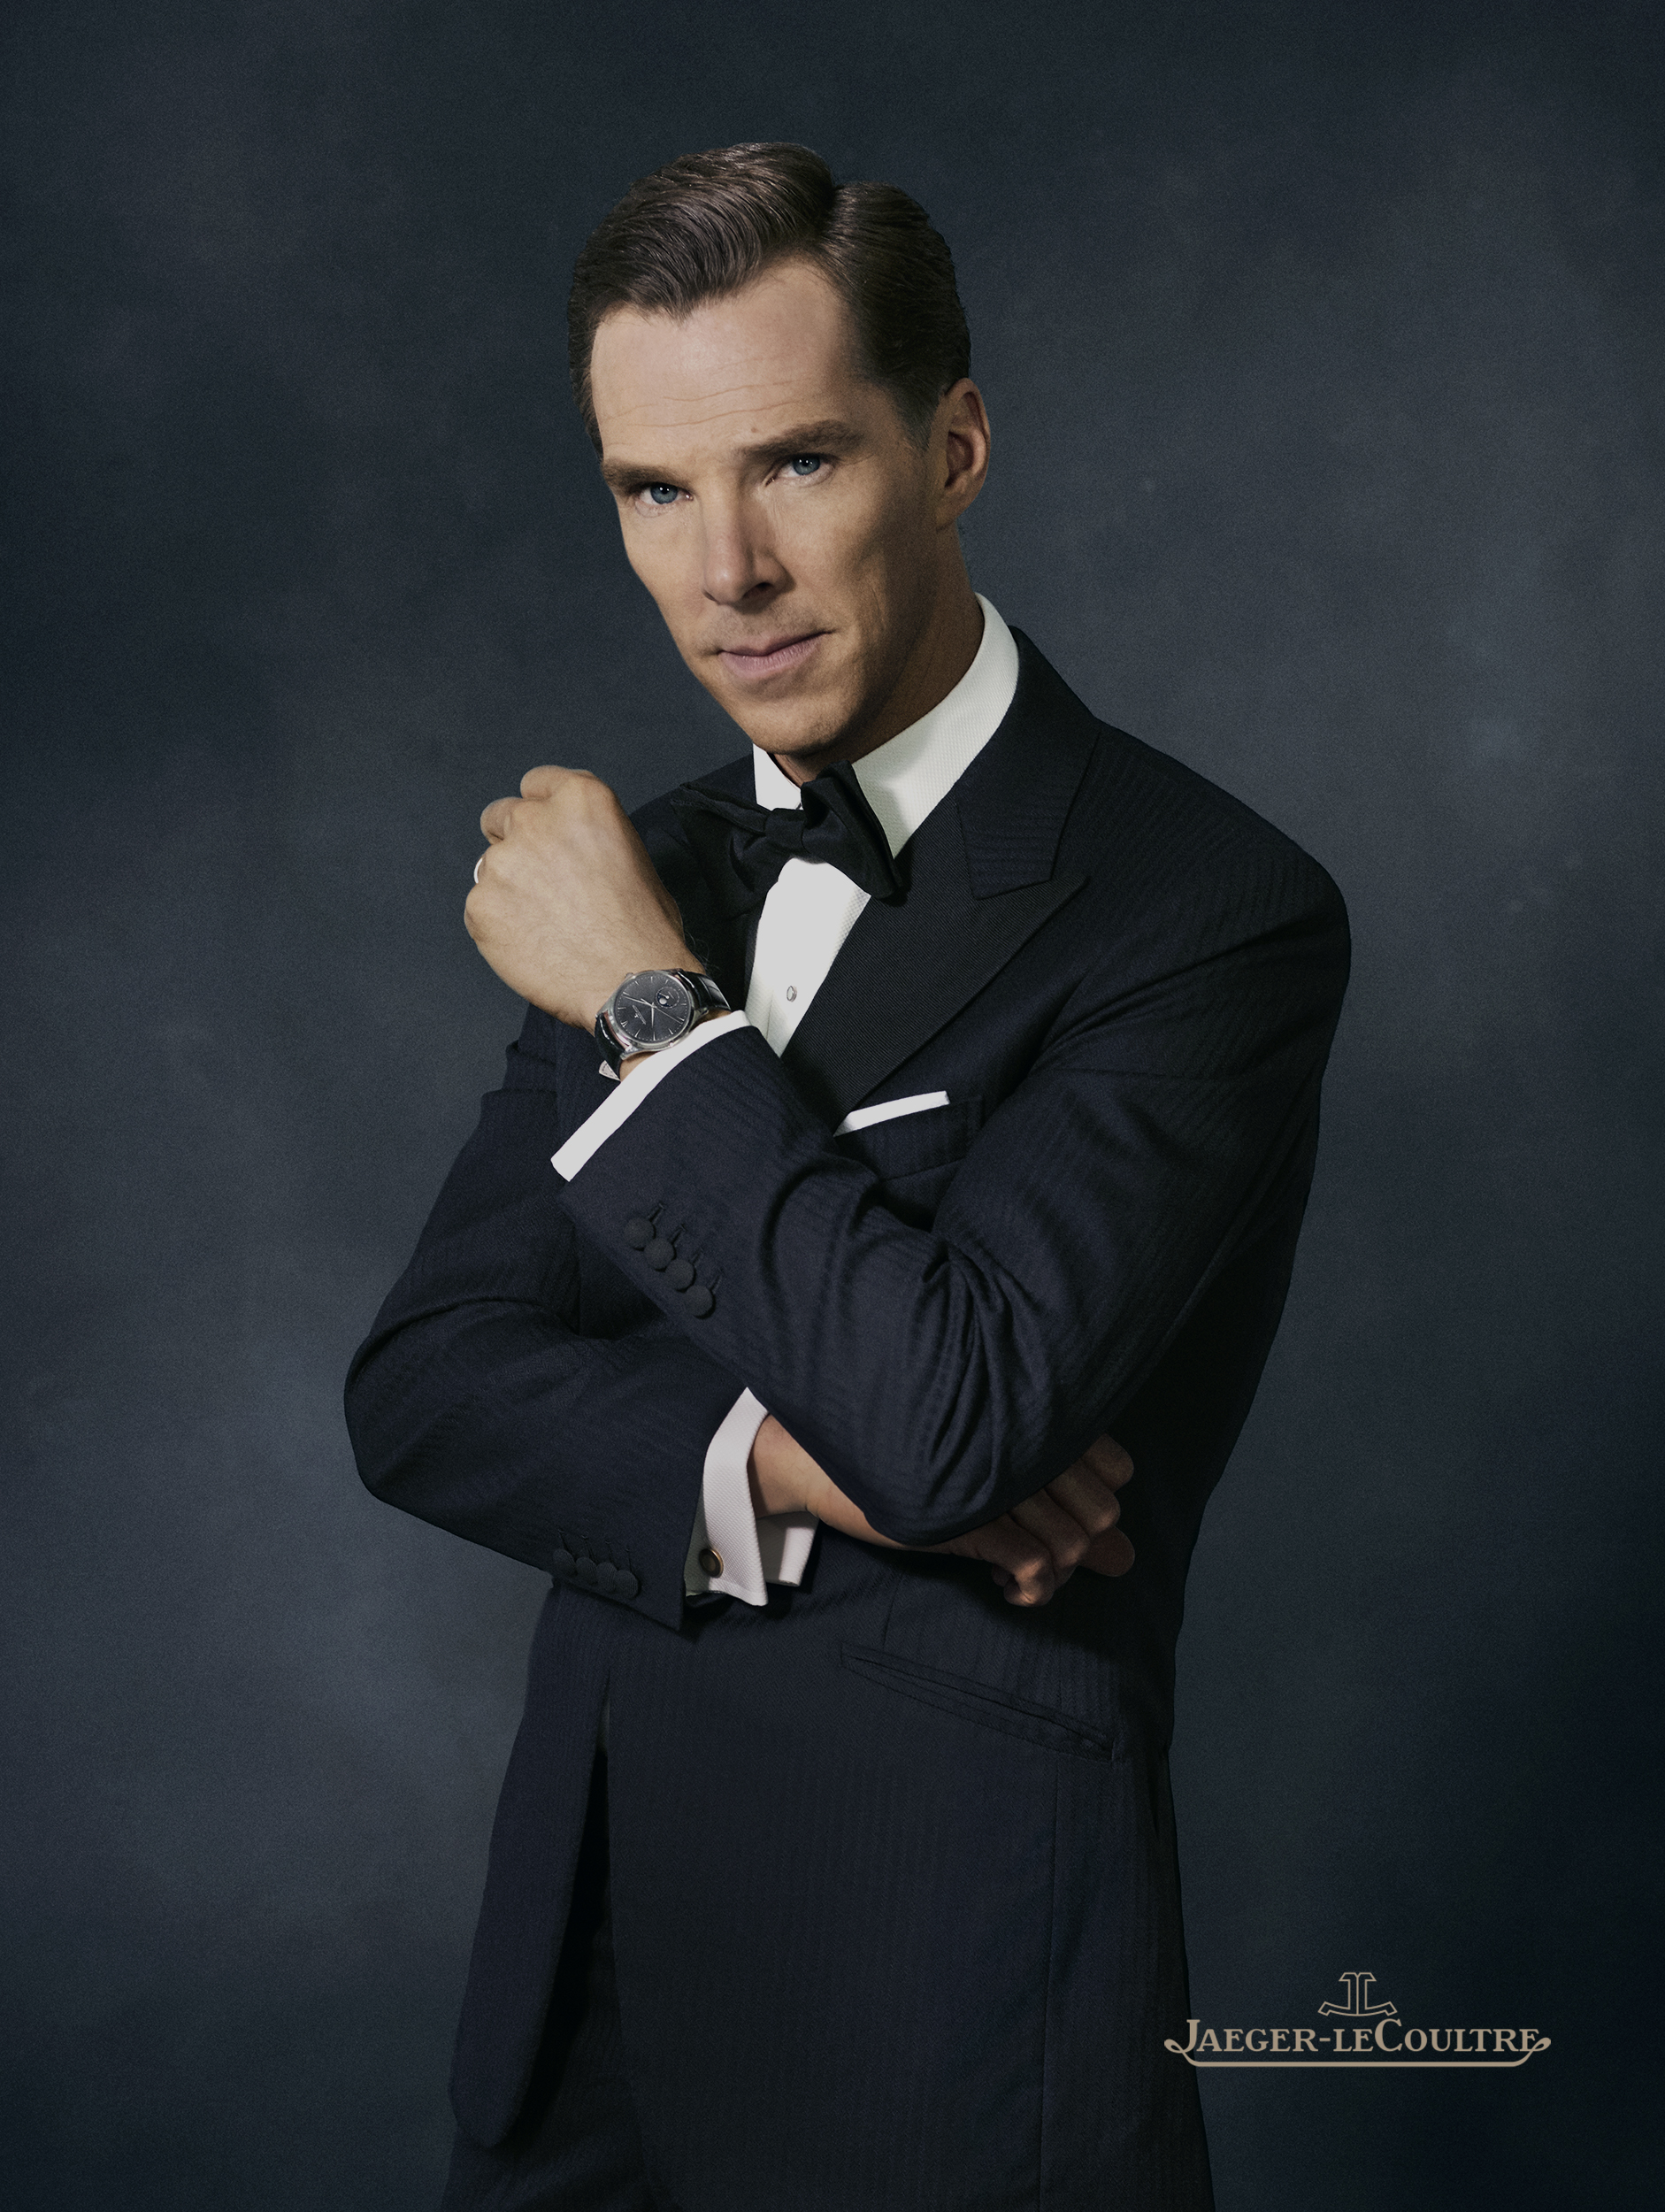 Benedict Cumberbatch_365_V02 low res.jpg